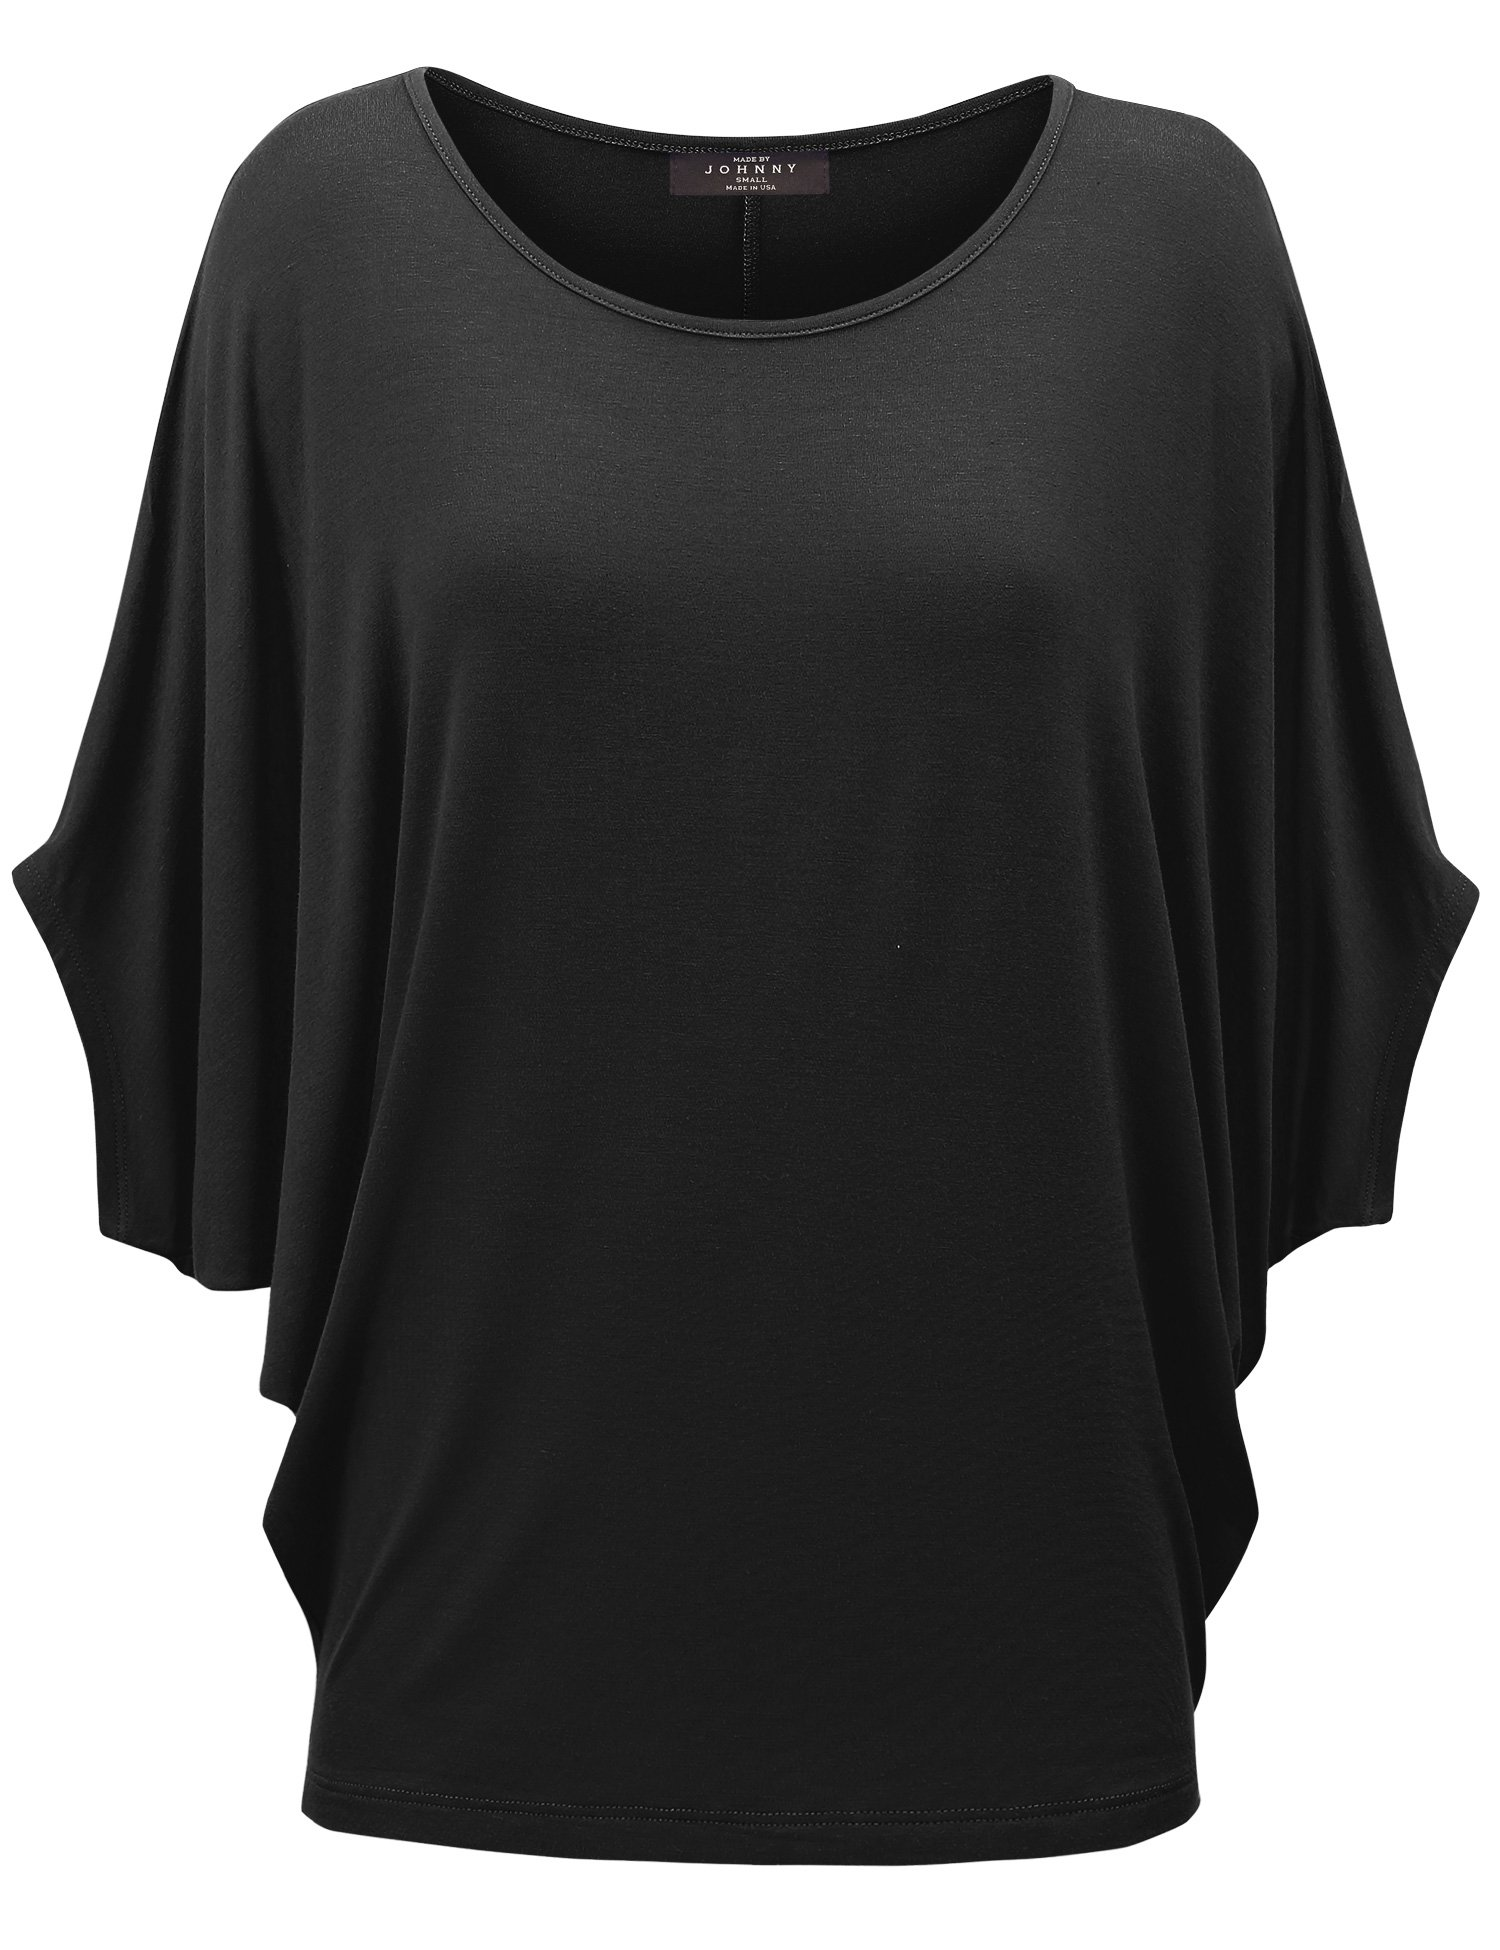 Made By Johnny MBJ WT1073 Womens Scoop Neck Half Sleeve Batwing Dolman Top XL Black